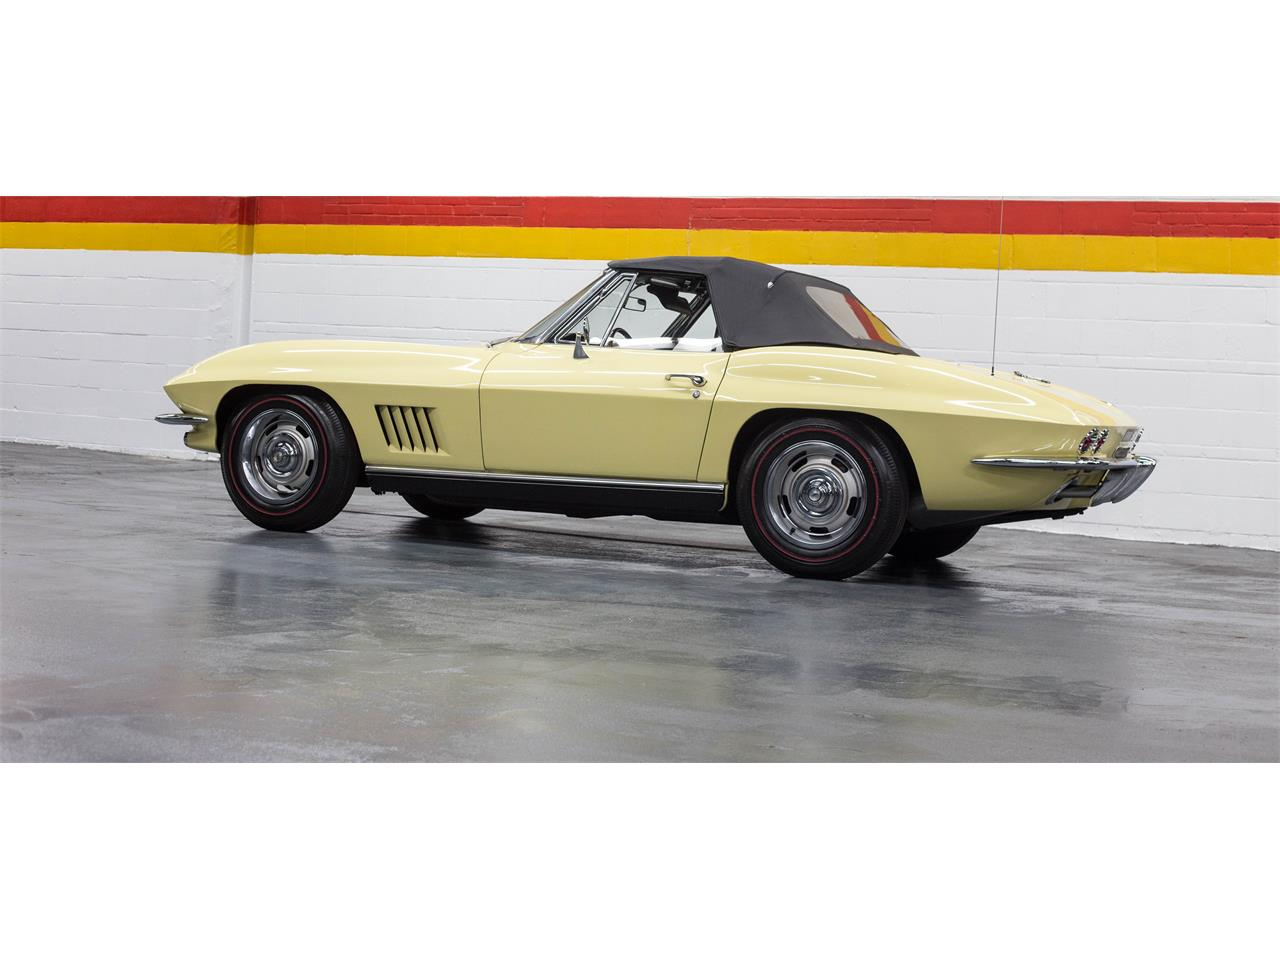 Large Picture of Classic '67 Chevrolet Corvette located in Quebec - $79,990.00 Offered by John Scotti Classic Cars - GA0D